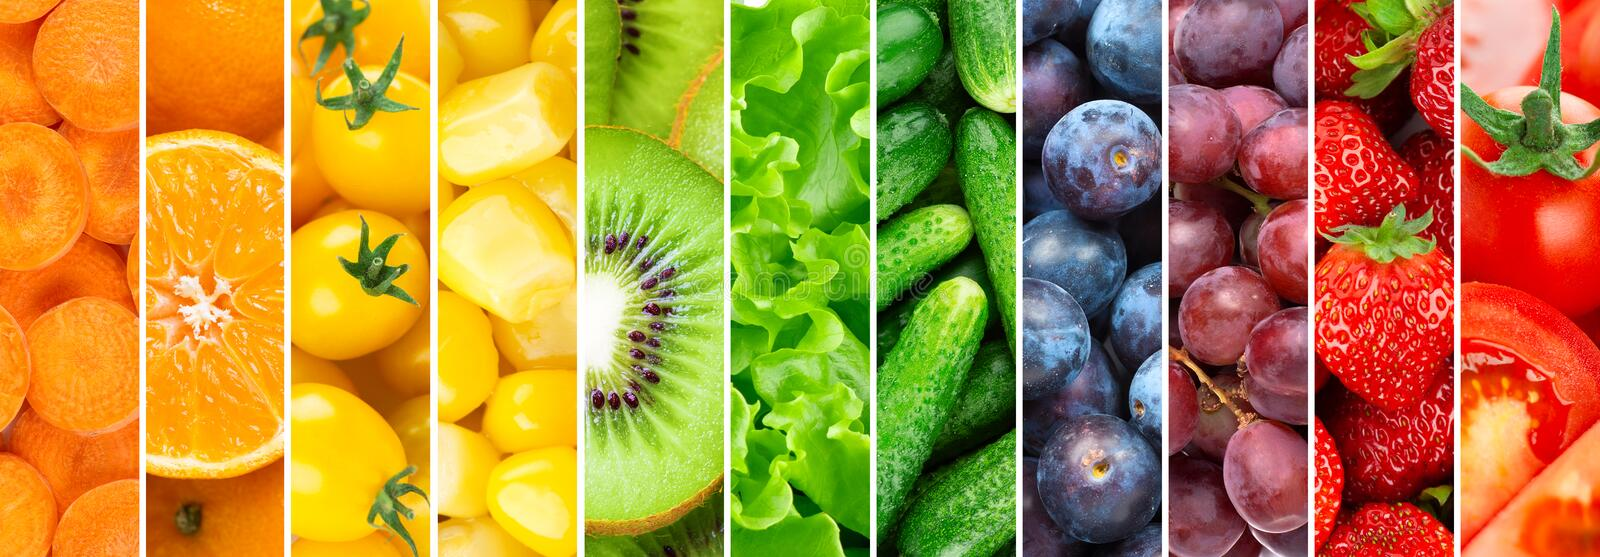 Background of fruits, vegetables and berries. Fresh food royalty free stock photo